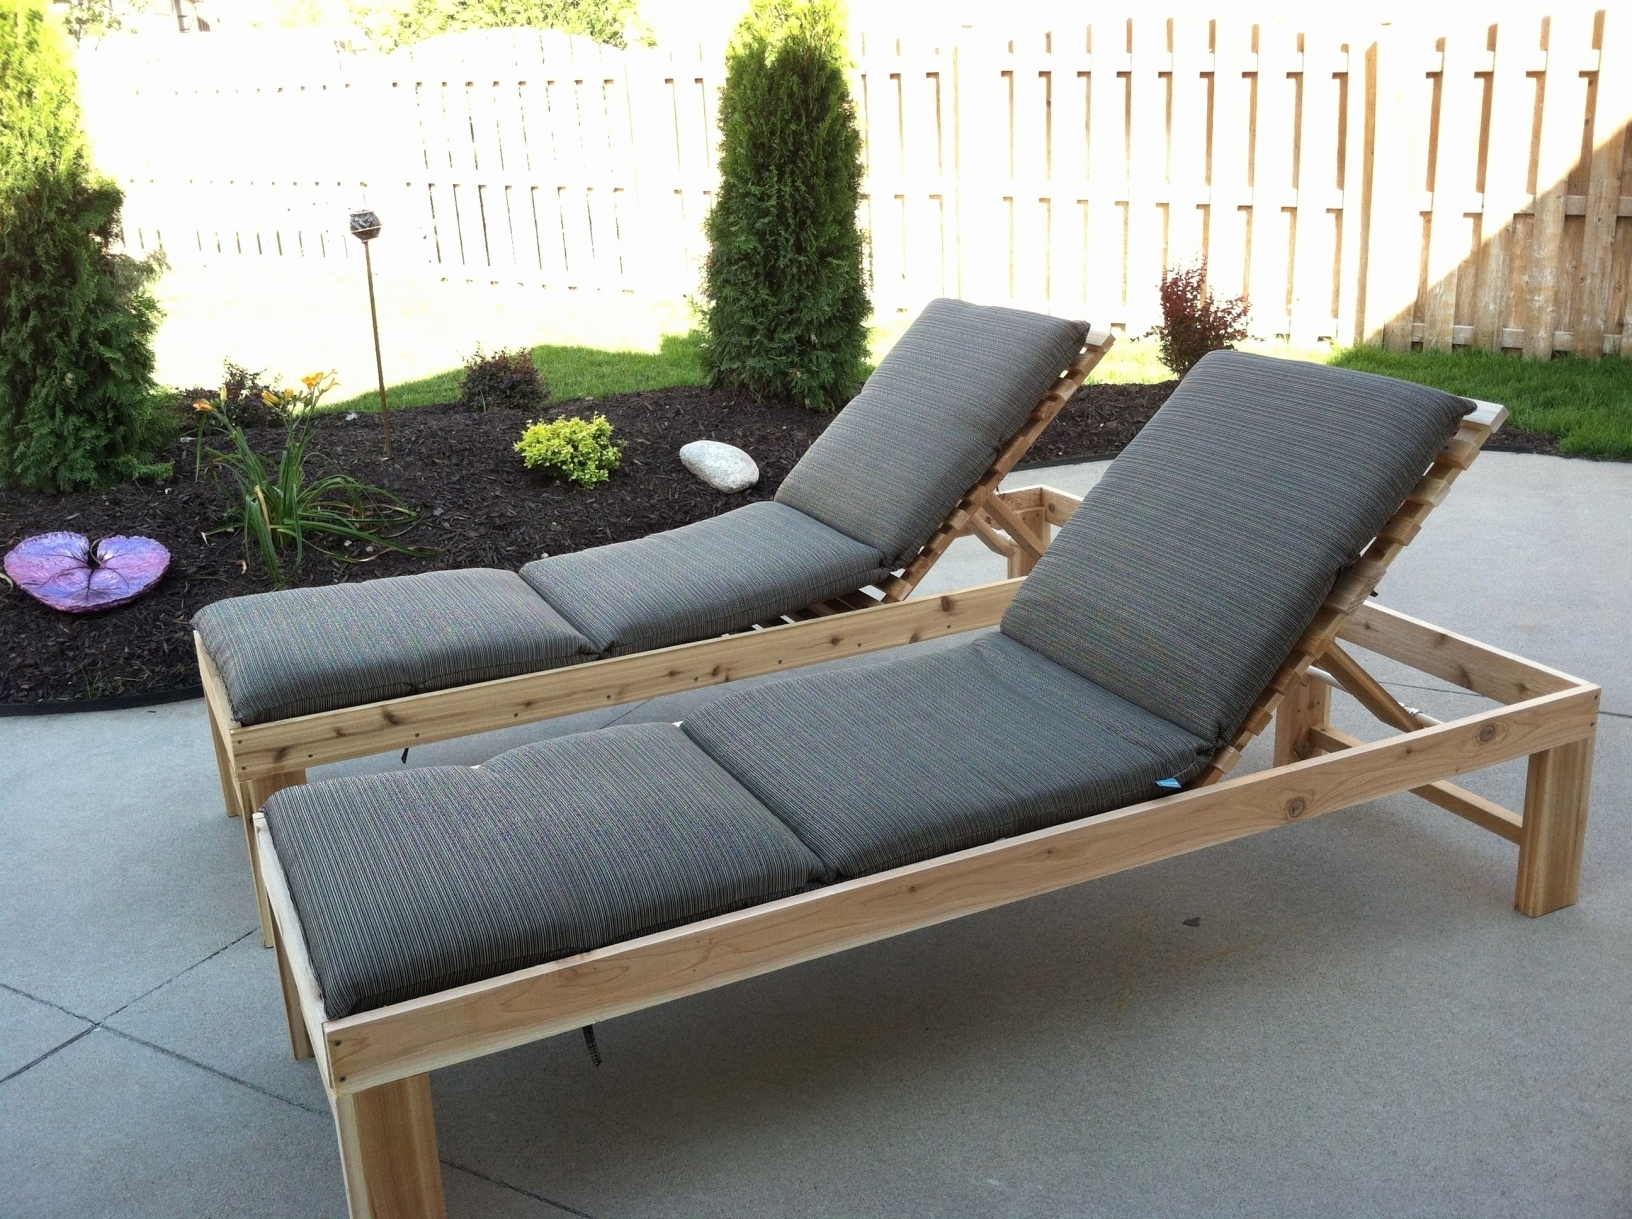 Trendy Beach Chaise Lounge Chairs Amazing Diy Chaise Lounge Diy Outdoor Within Diy Chaise Lounge Chairs (View 15 of 15)